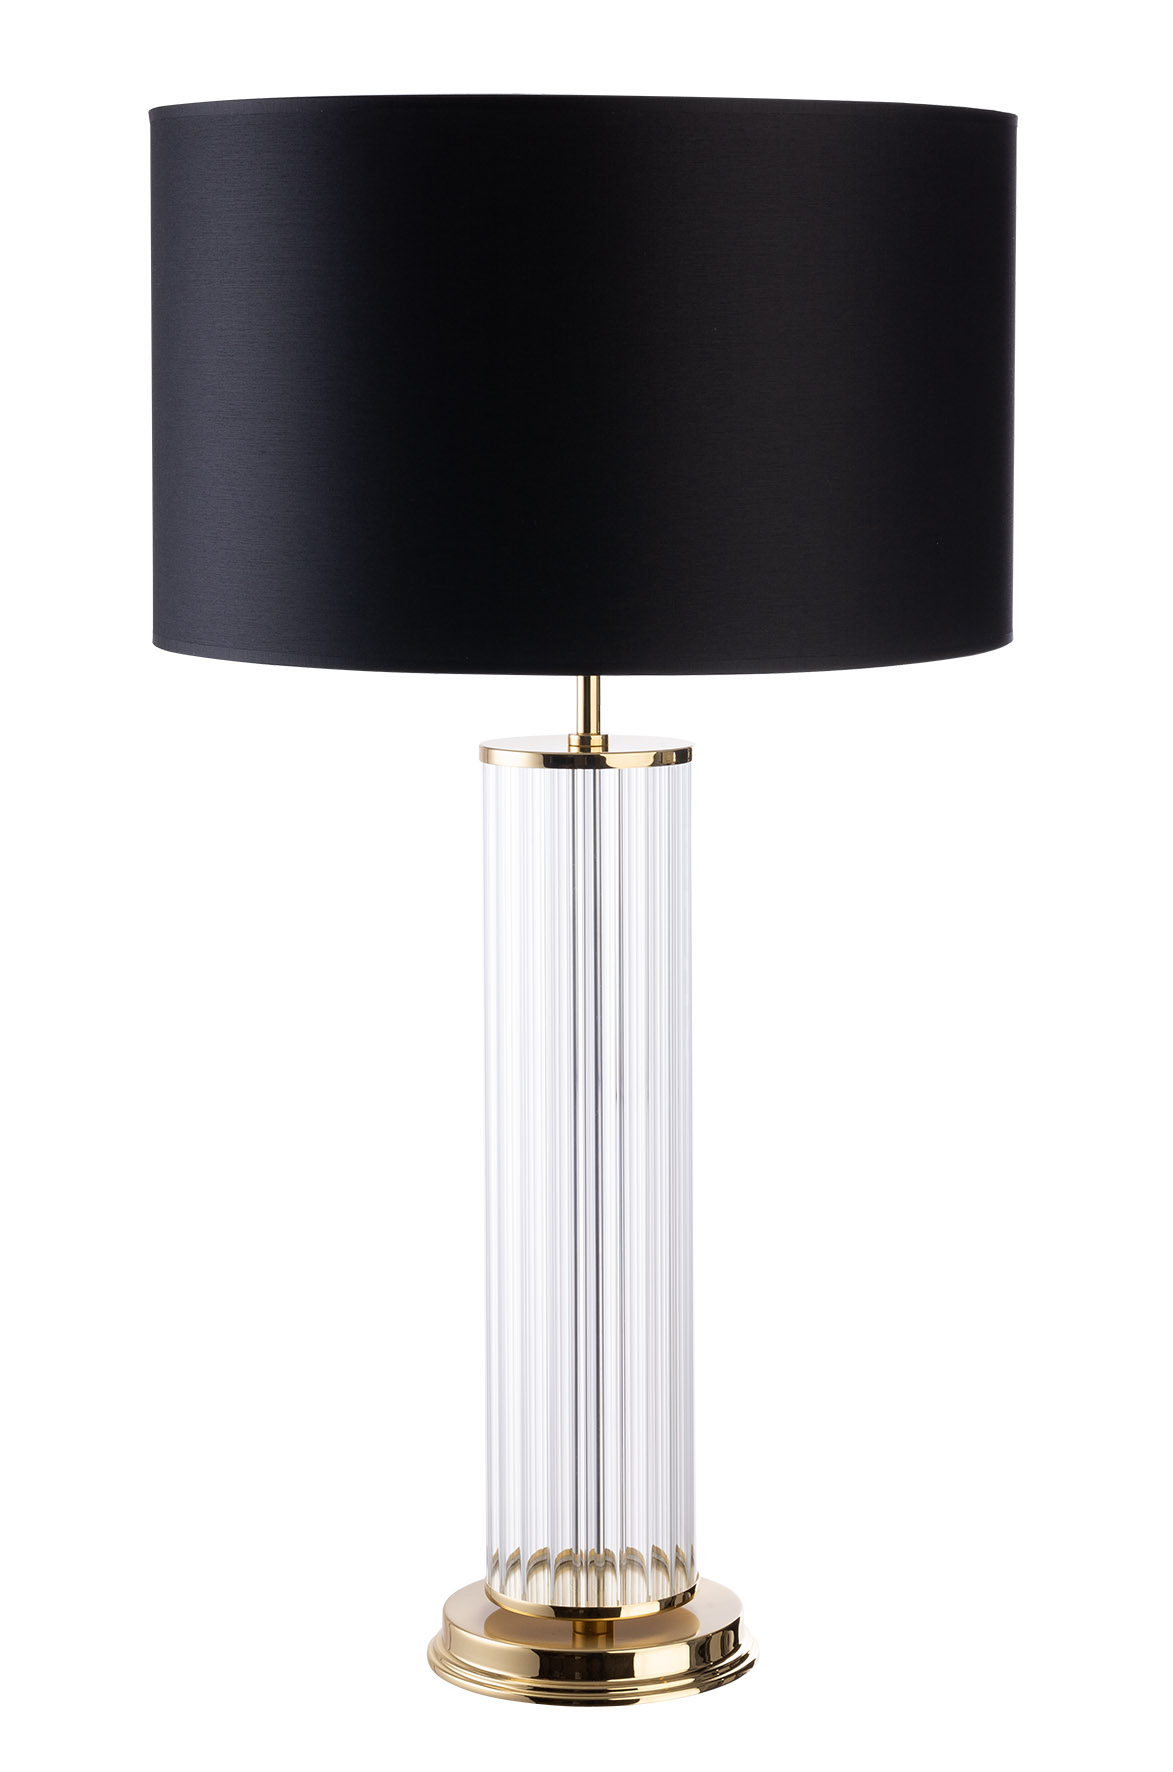 Picture of: Designer Luxury Table Lamp Empoli Brass Lighting With Black Shade And Glass Elements With Gold Luxury Chandelier